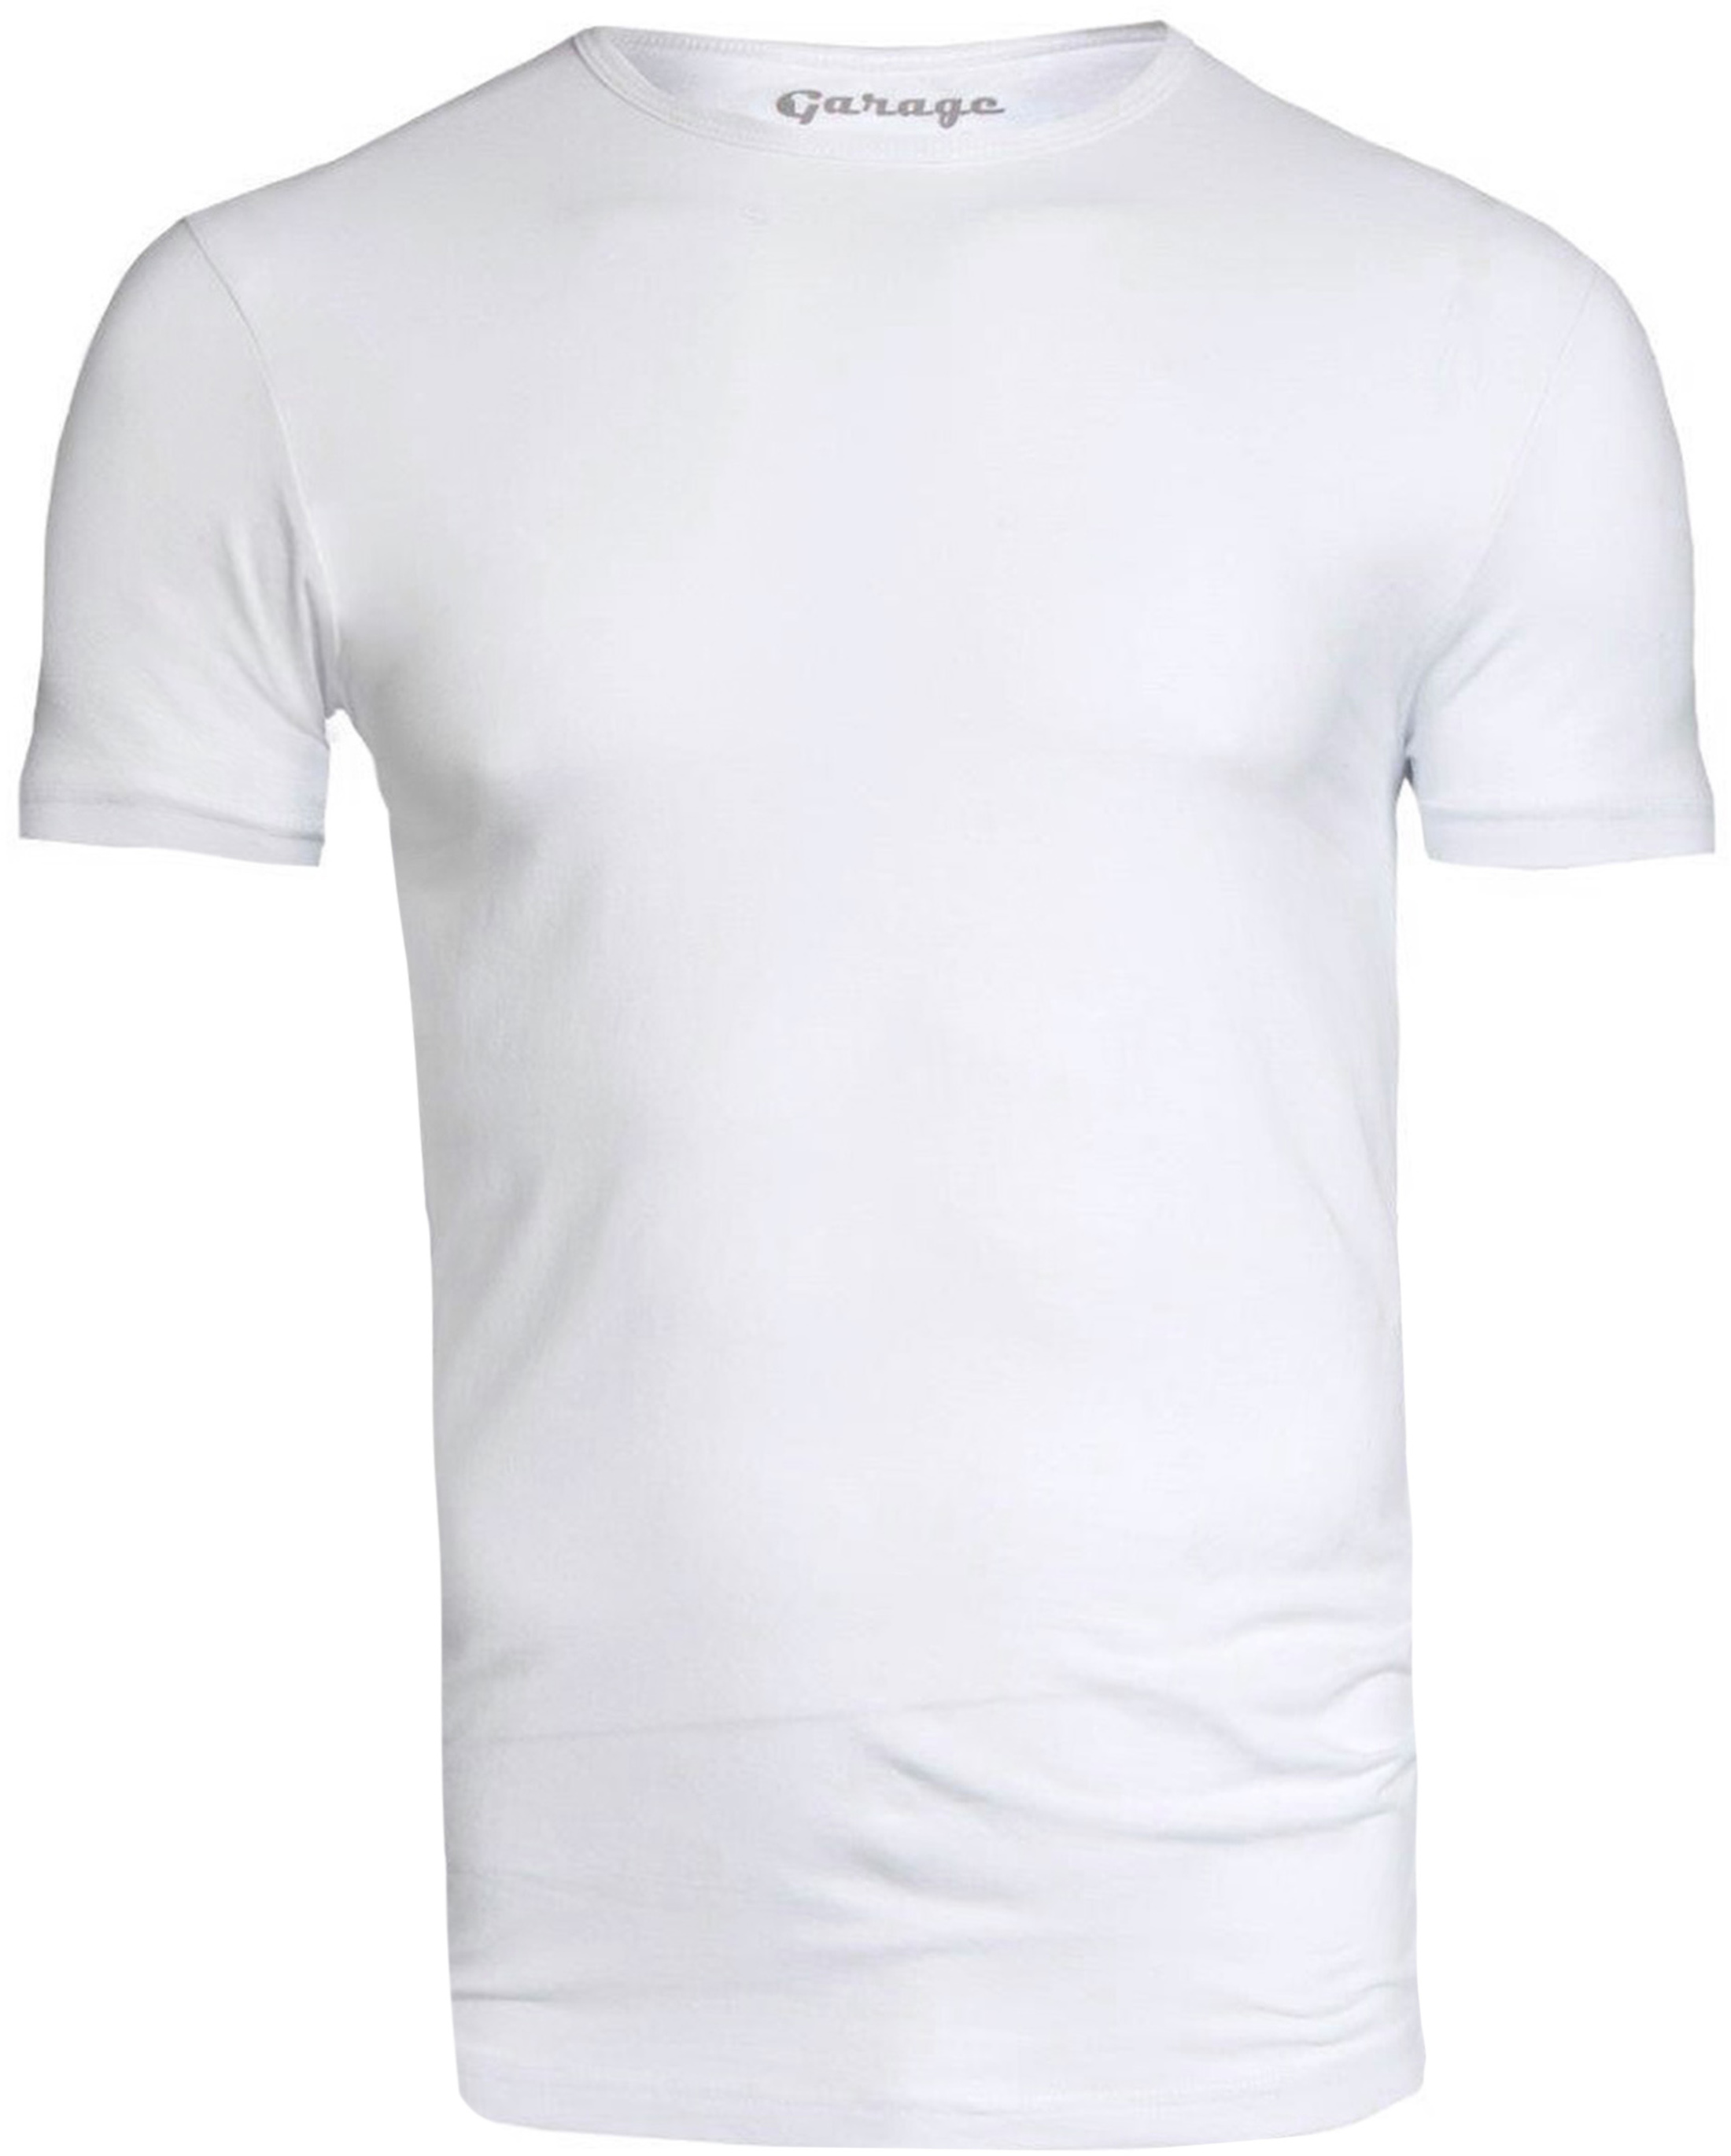 Garage Stretch Basic White O-Neck